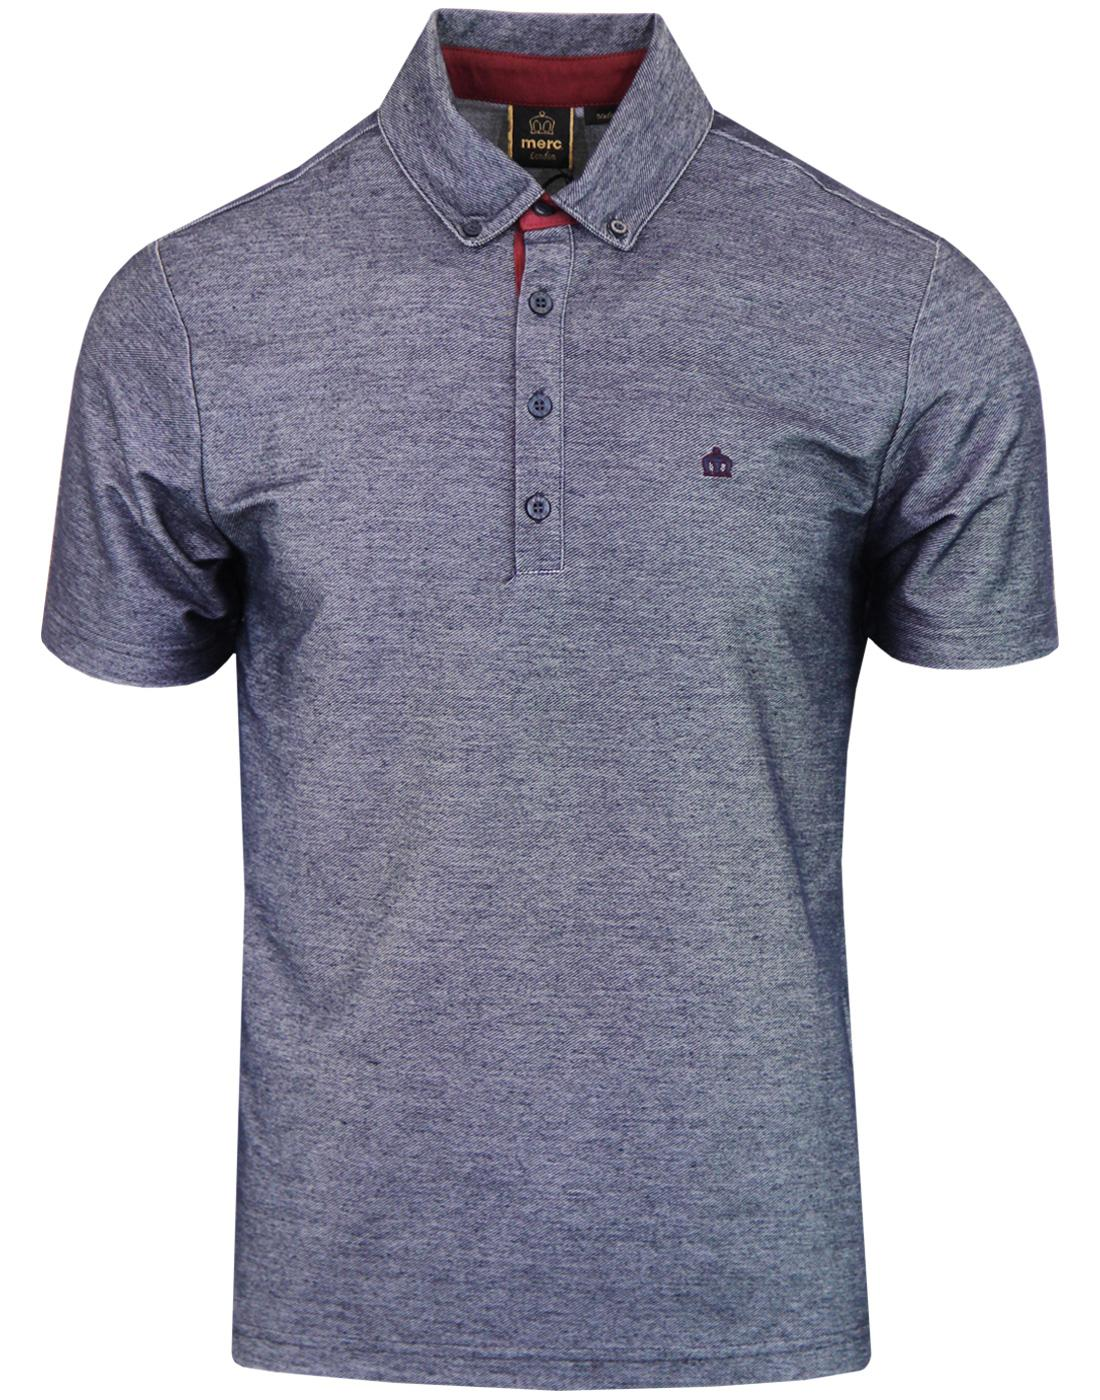 Marine MERC Retro Mod Chambray Twill Textured Polo